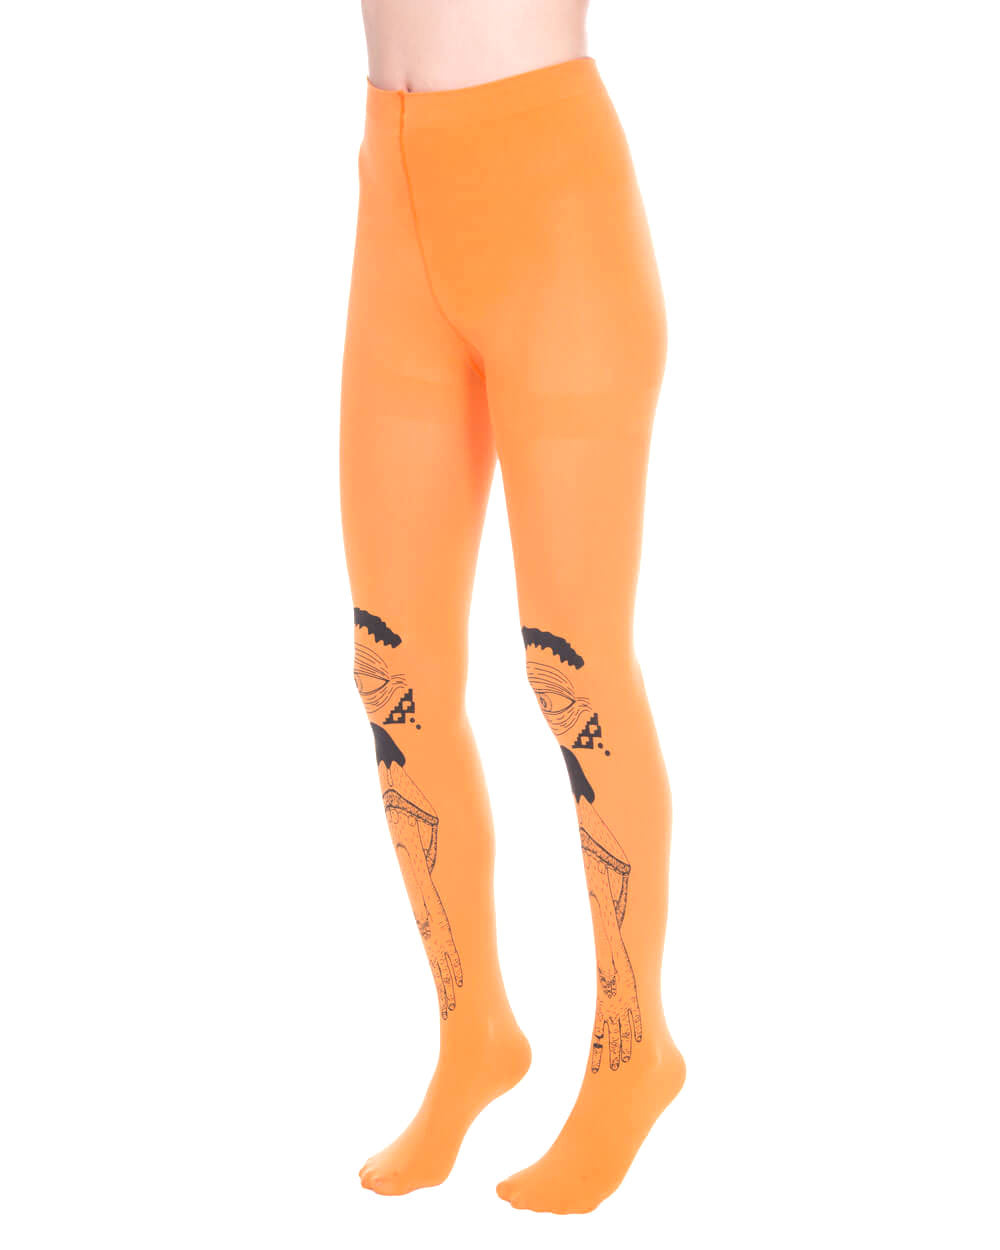 HAND EYE ORANGE TIGHTS - Eros Mortis